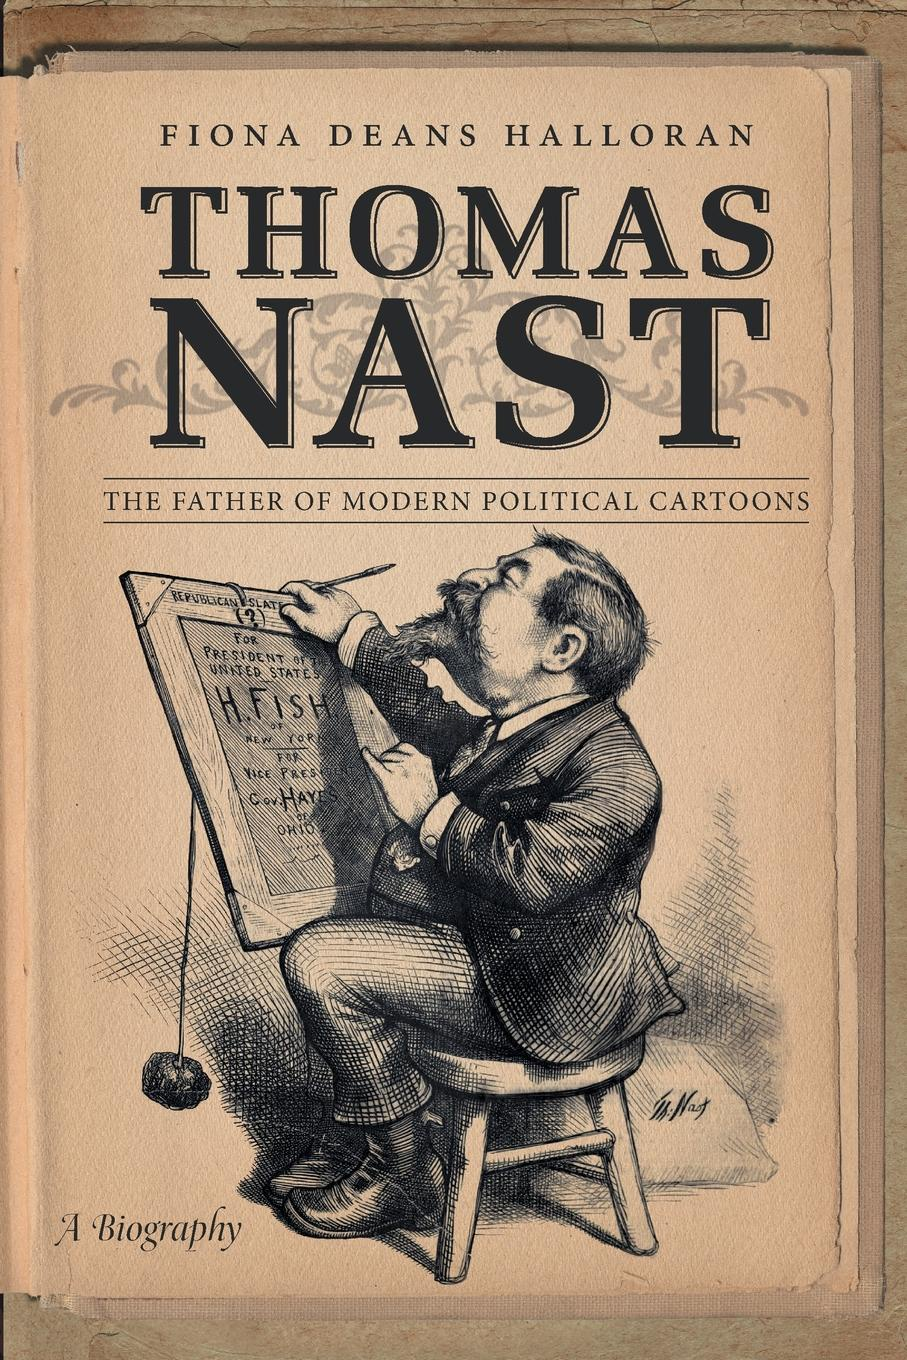 Fiona Deans Halloran Thomas Nast. The Father of Modern Political Cartoons the conde nast traveler book of unforgettable journeys